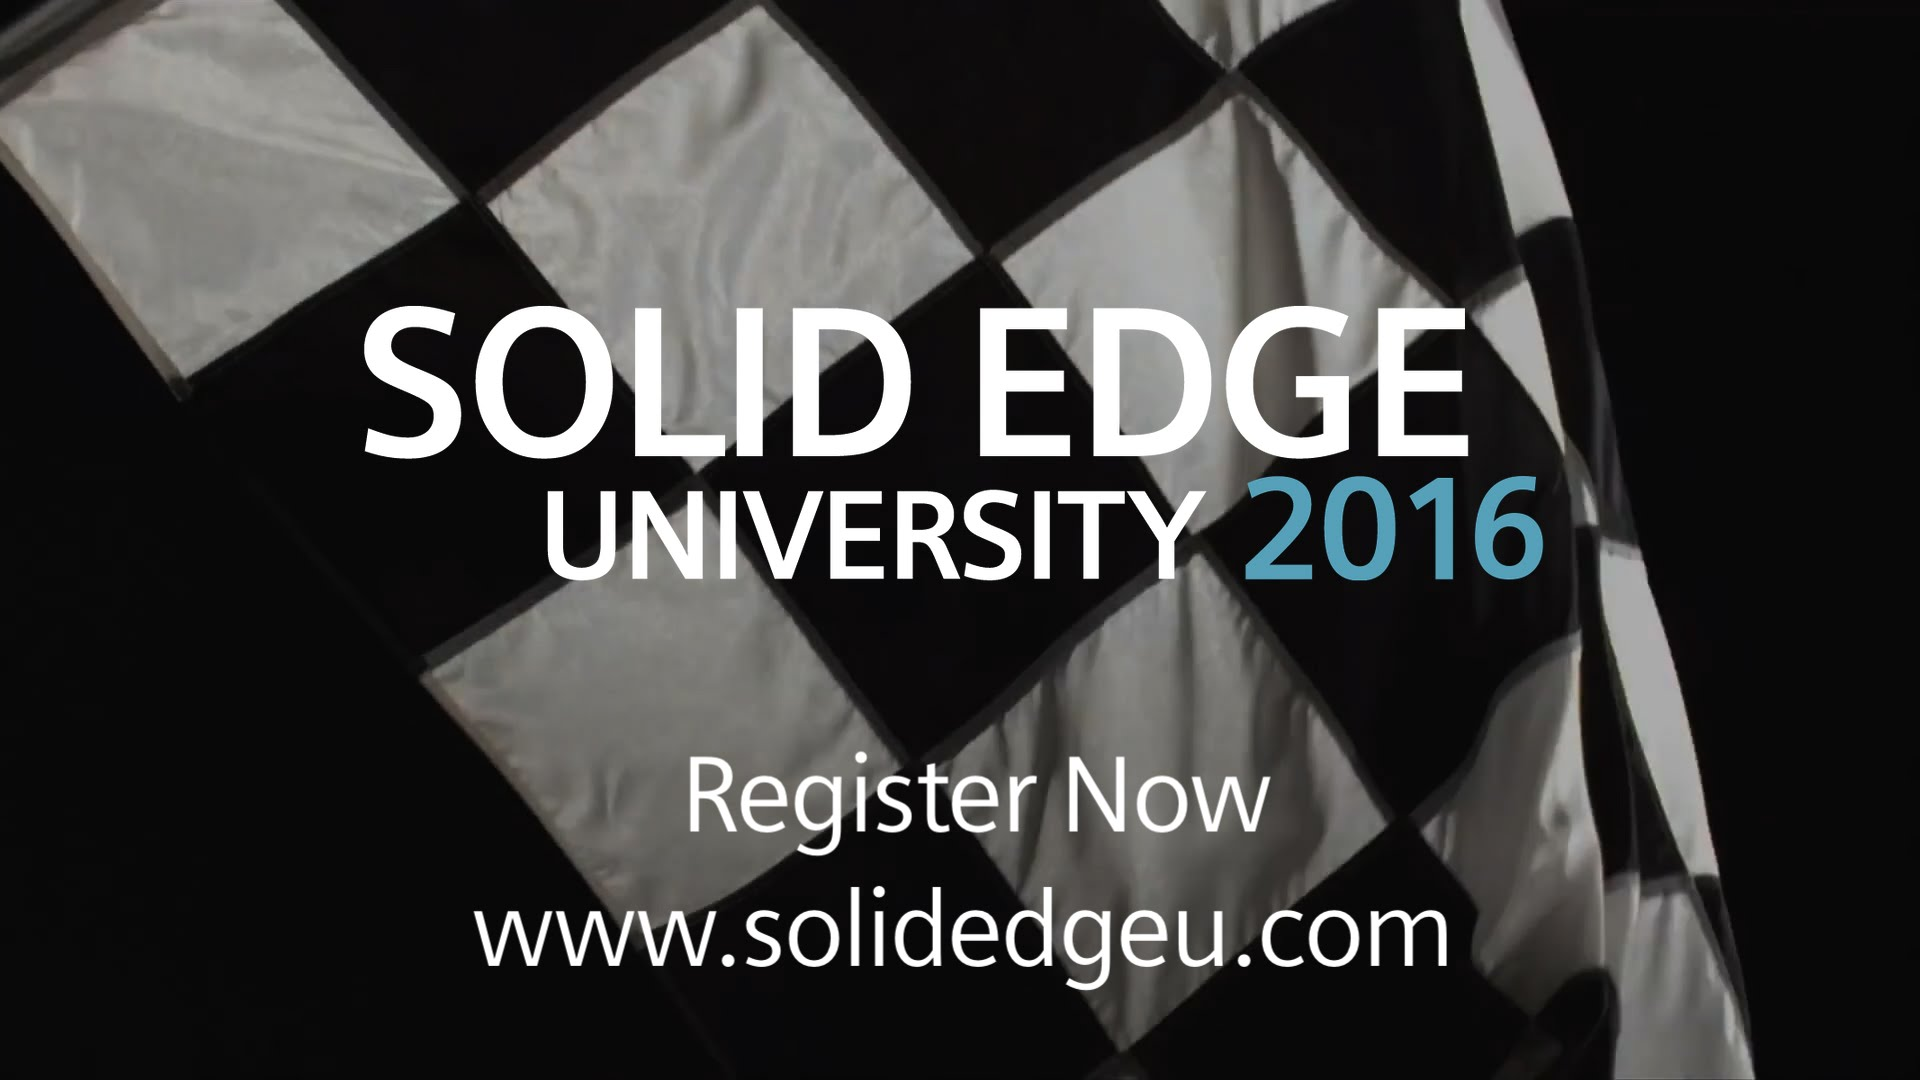 Solid Edge University and New Content Coming Soon